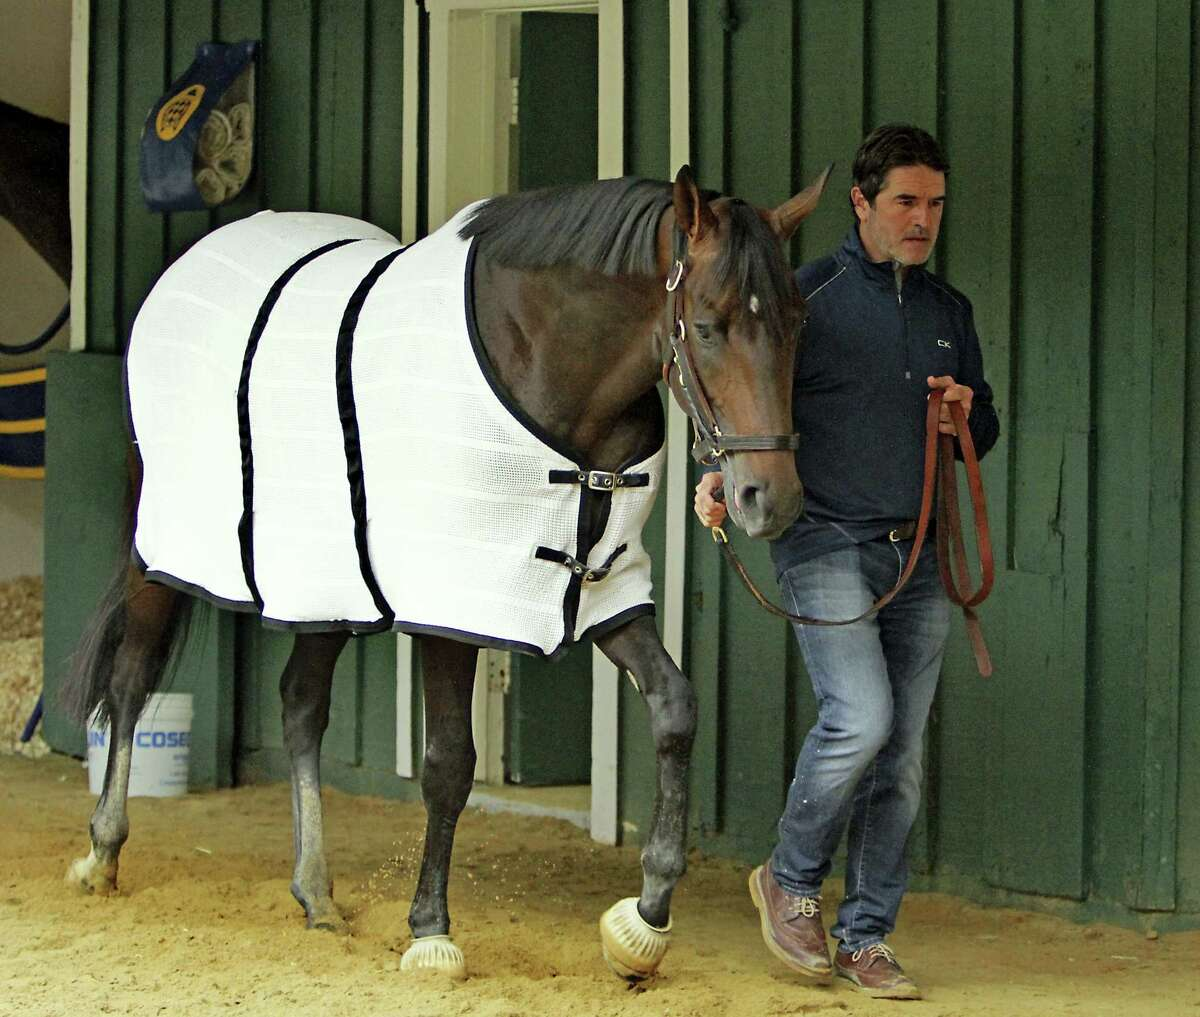 Trainer Keith Desormeaux walks Preakness Stakes hopeful Exaggerator in the stakes barn at Pimlico Race Course Wednesday in Baltimore following a morning jog.